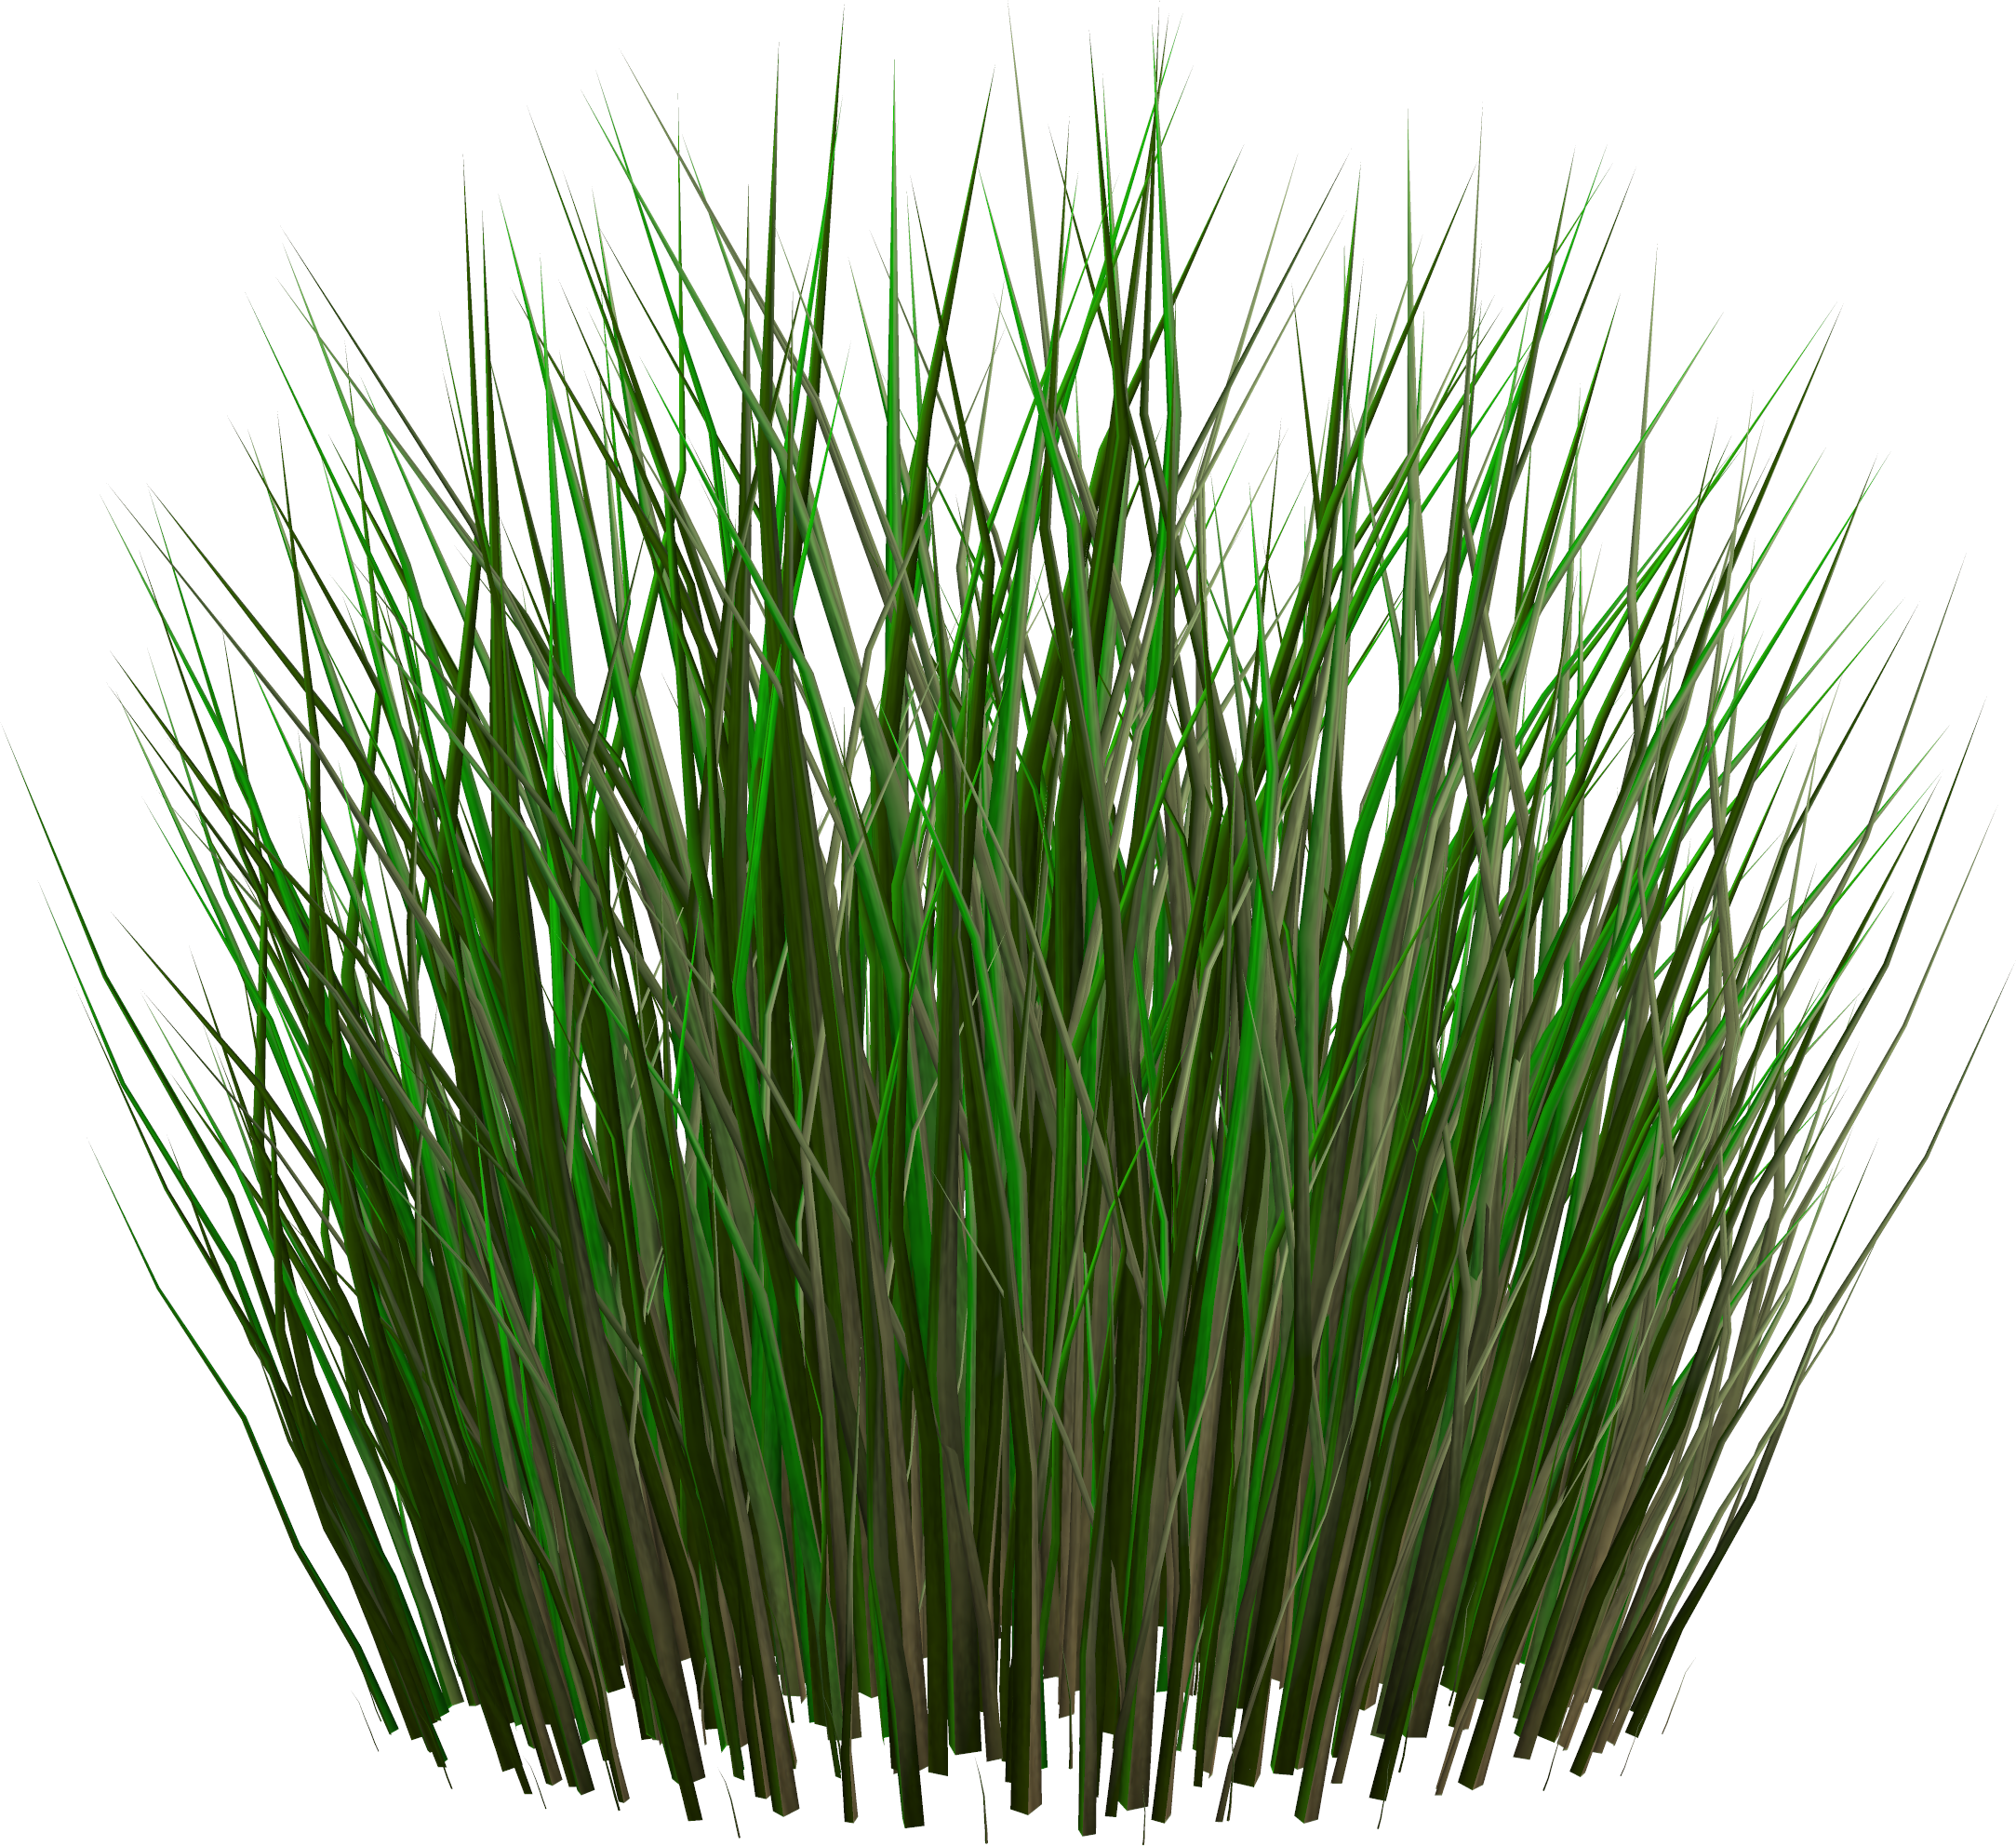 Billboard texture png. Grass transparent pictures free